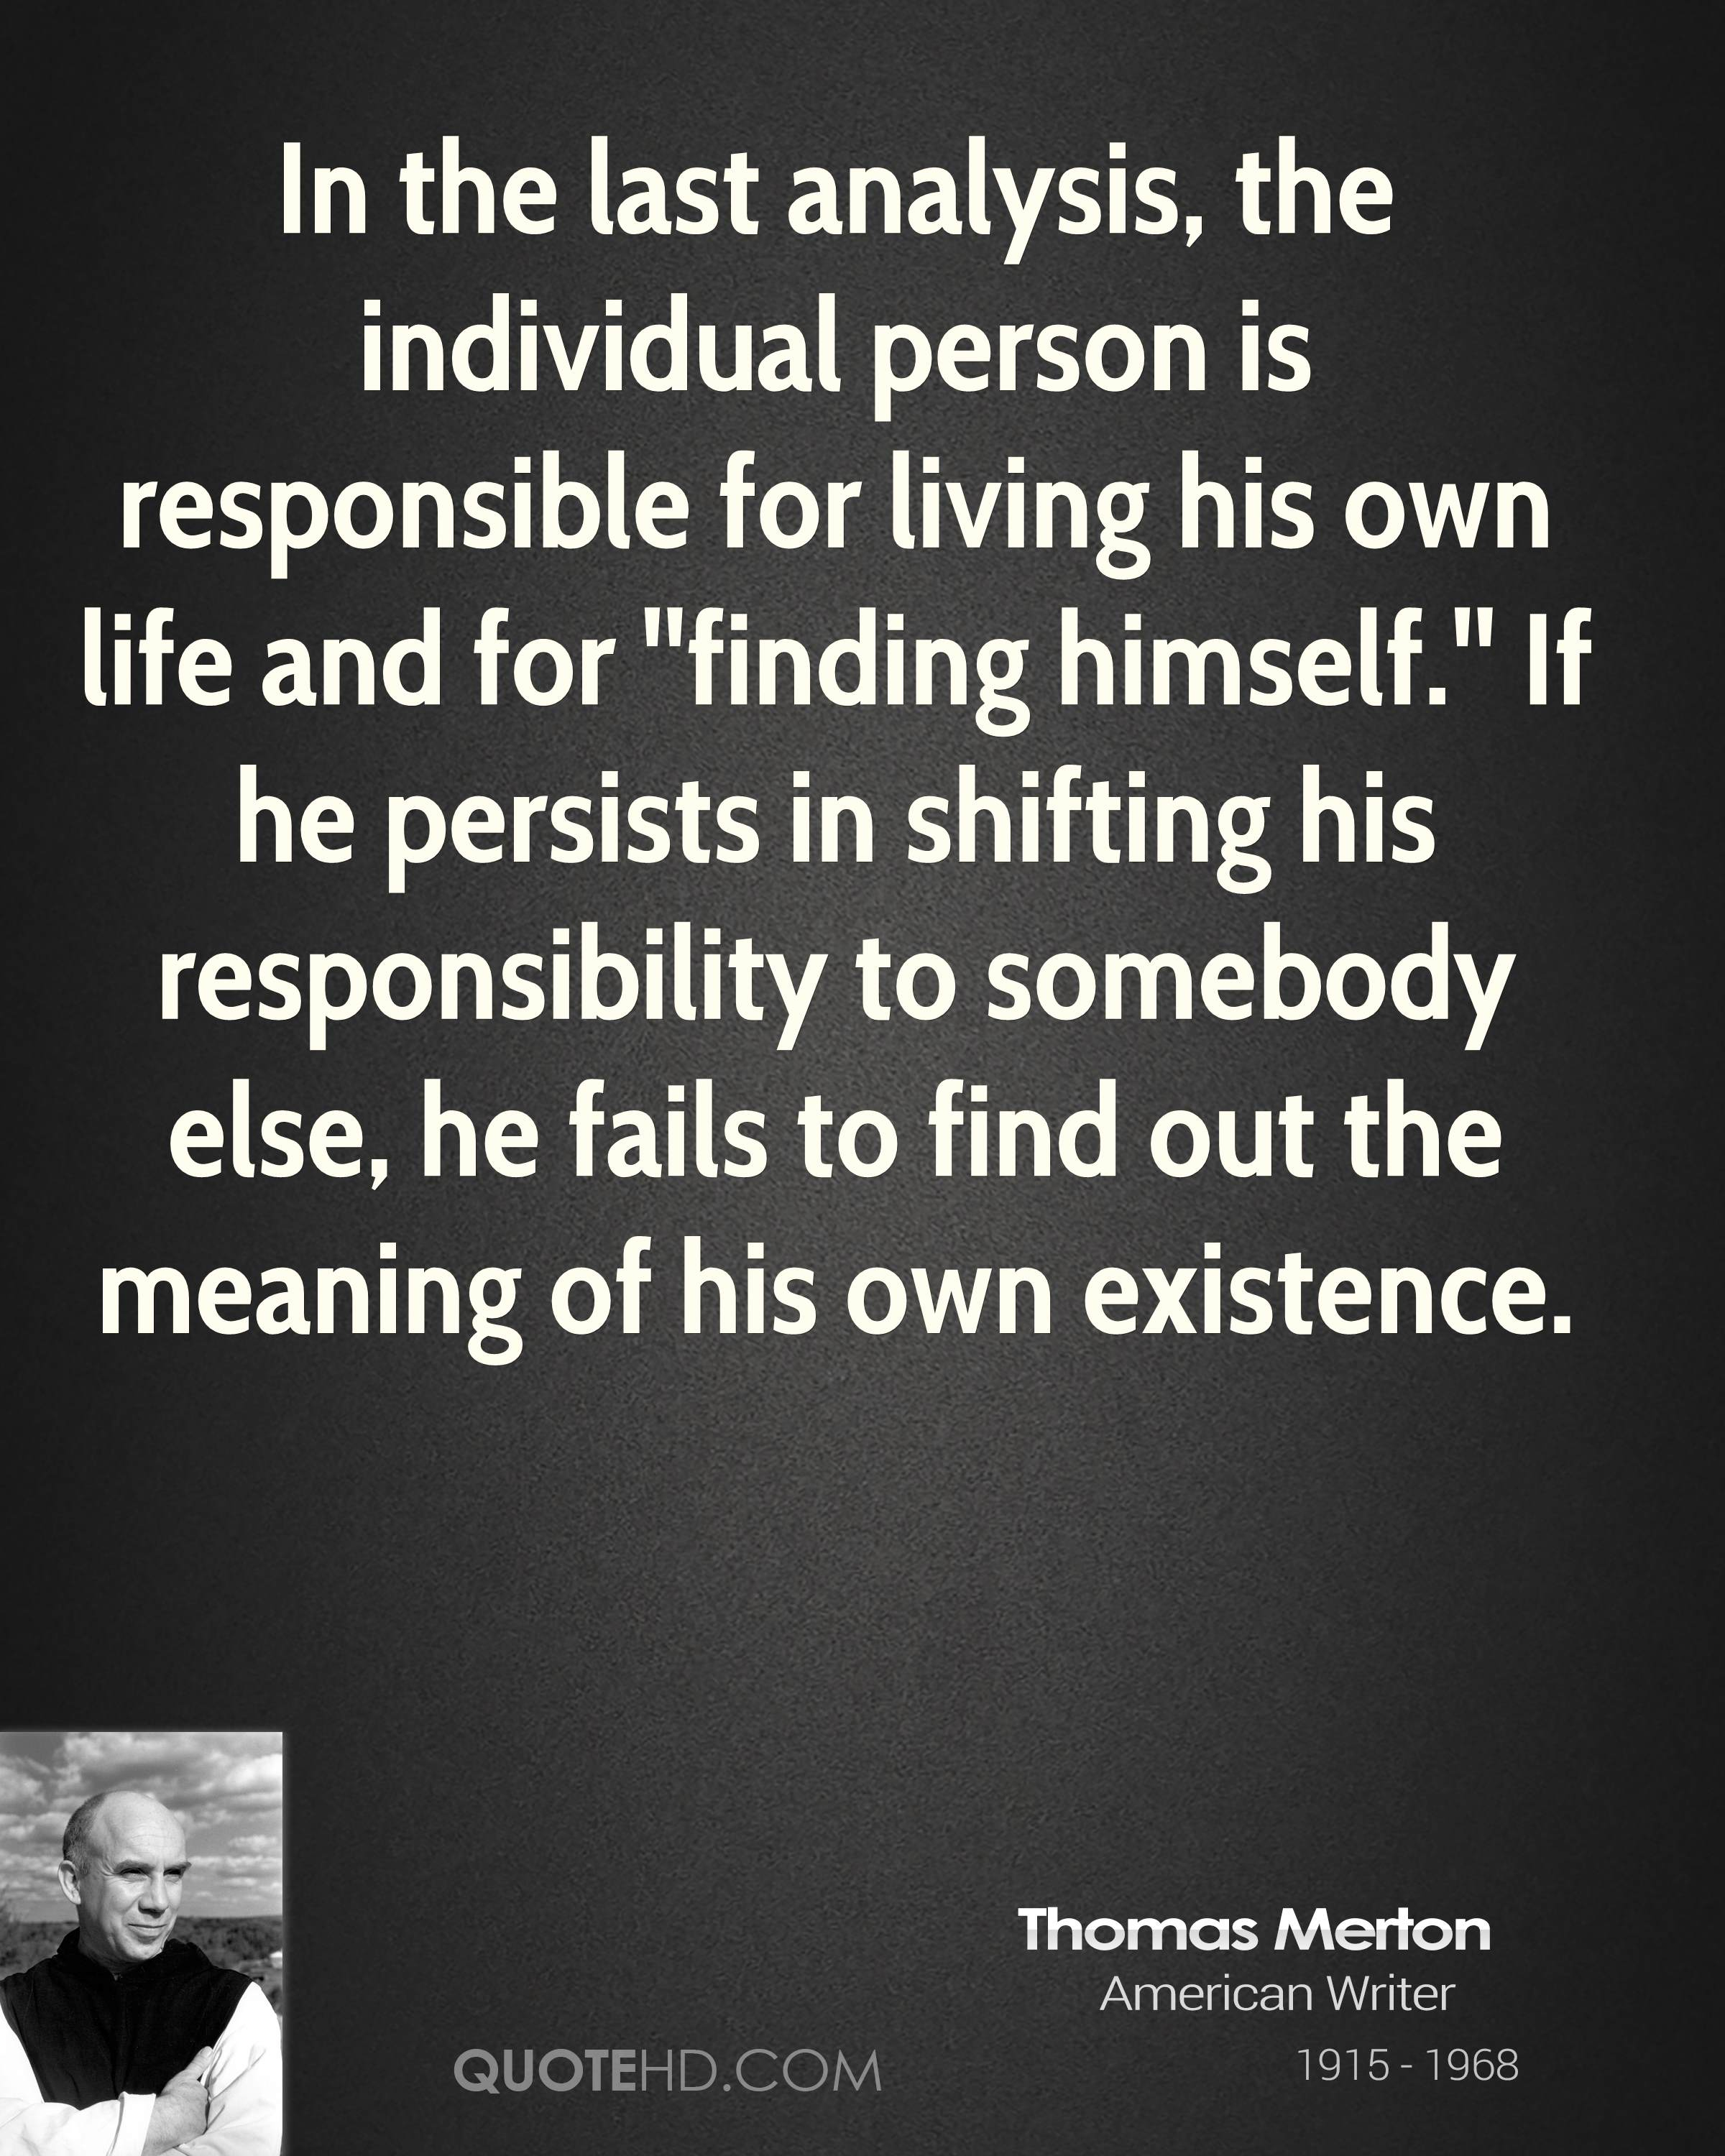 In the last analysis, the individual person is responsible for living his own life and for ''finding himself.'' If he persists in shifting his responsibility to somebody else, he fails to find out the meaning of his own existence.